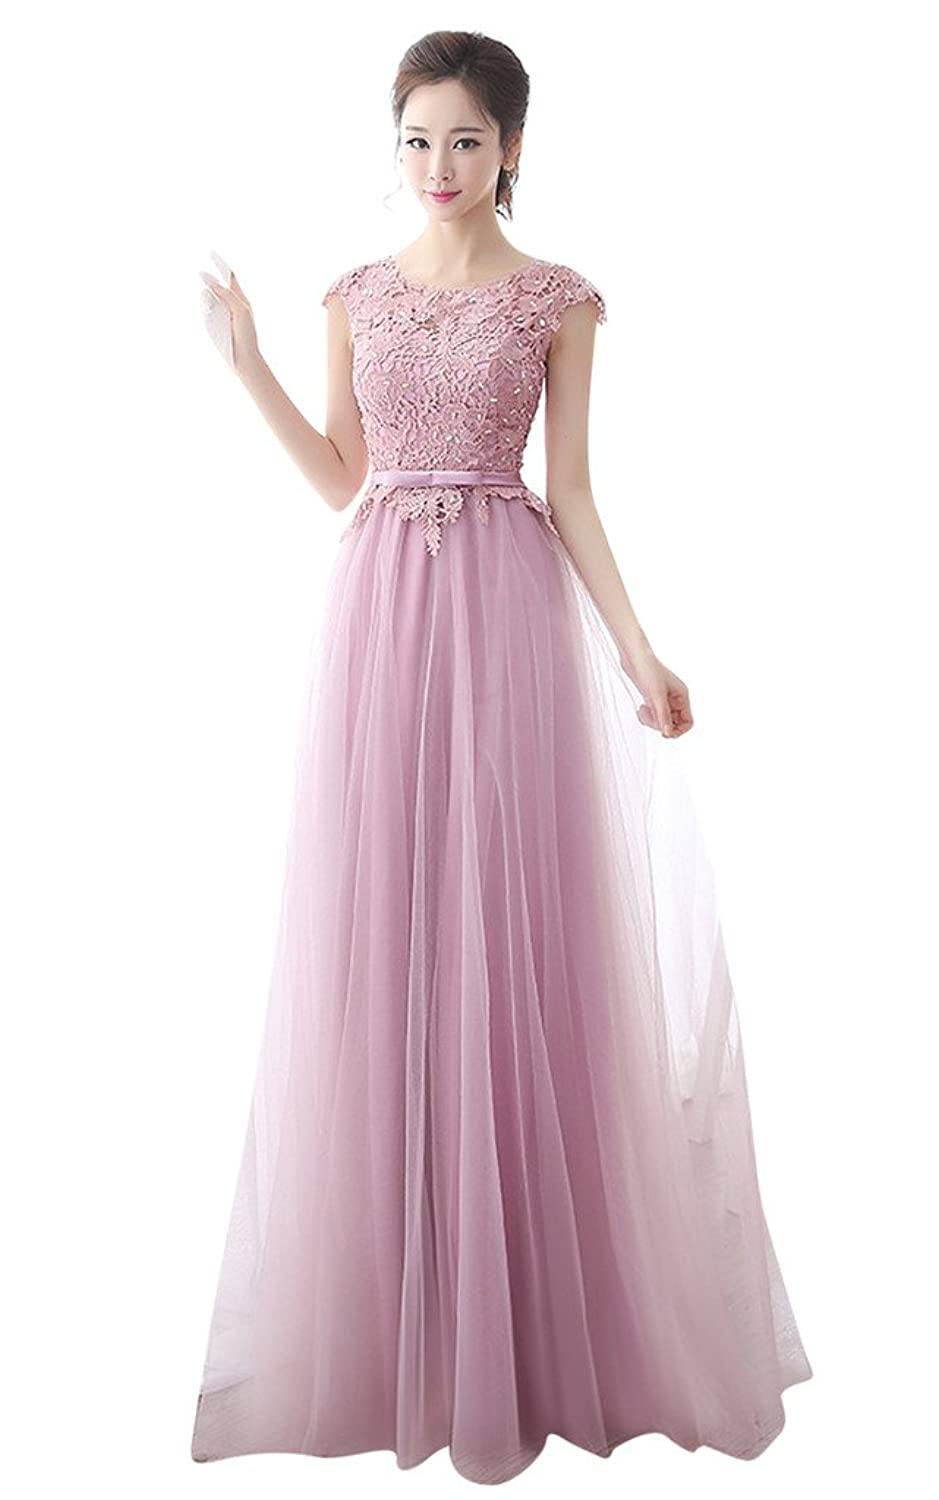 Vimans? Women's Long Pink Scoop Beaded Dresses for Bridesmaid with Appliques